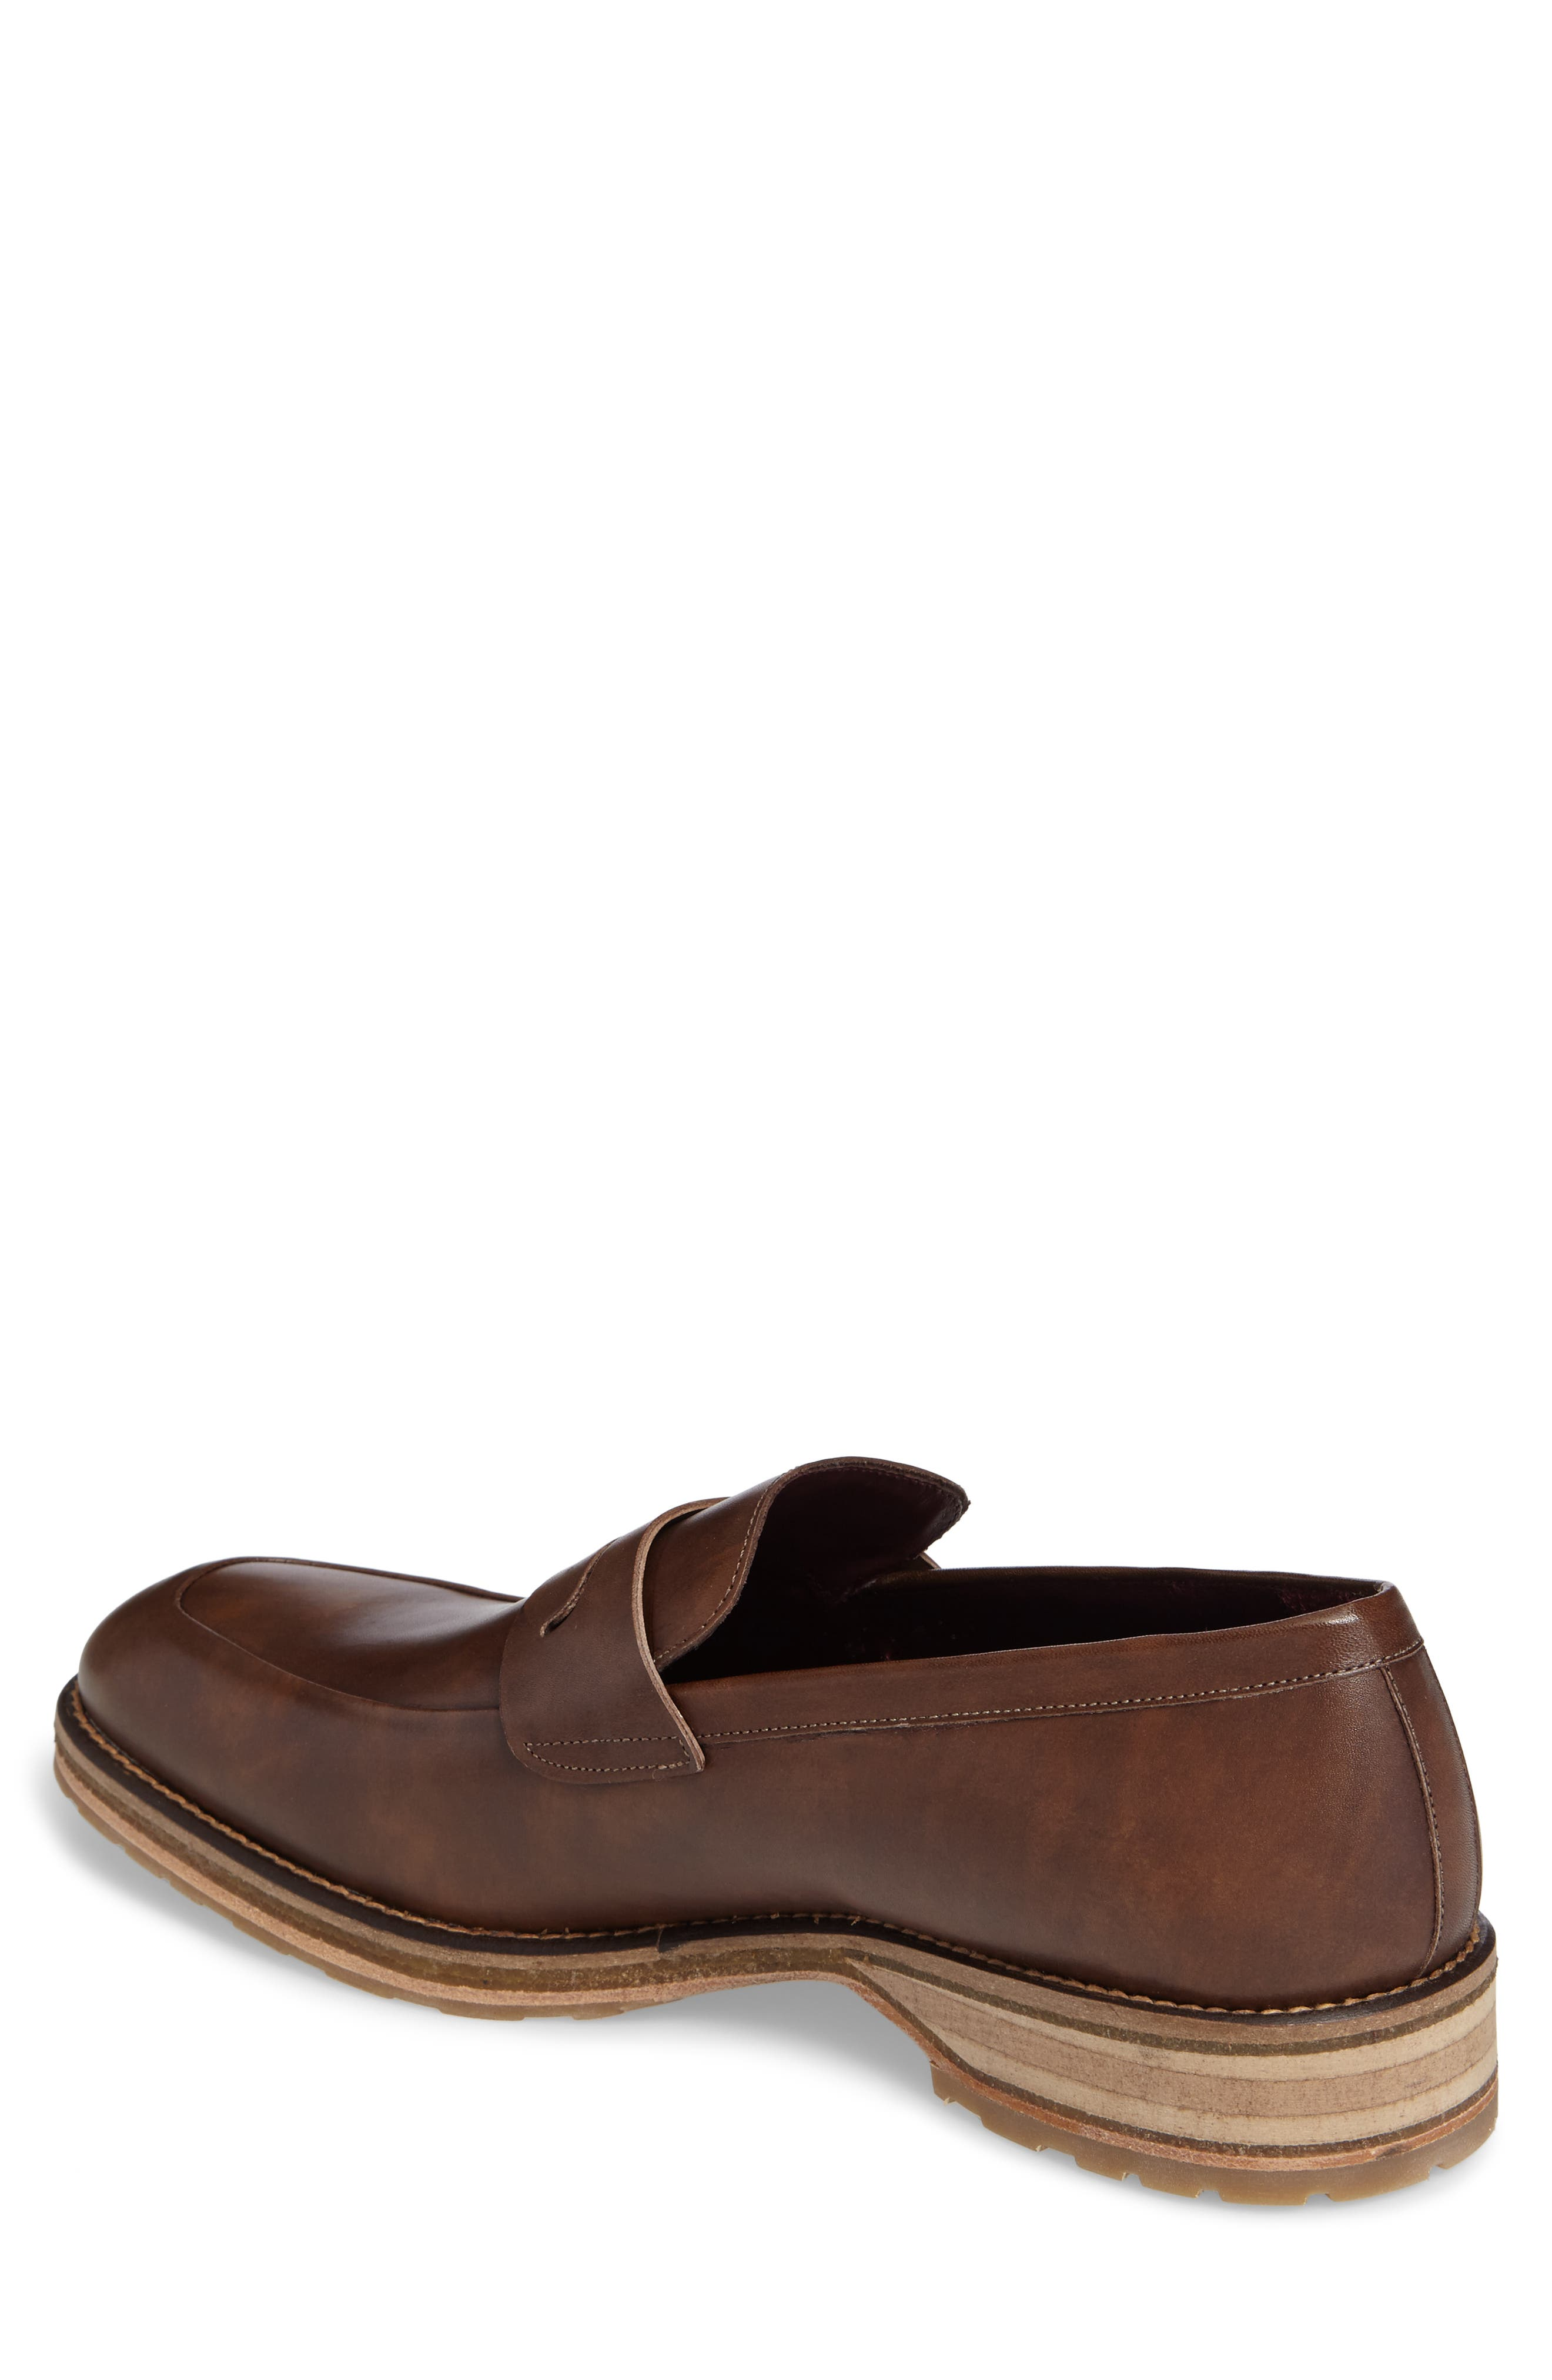 Cantonia Penny Loafer,                             Alternate thumbnail 2, color,